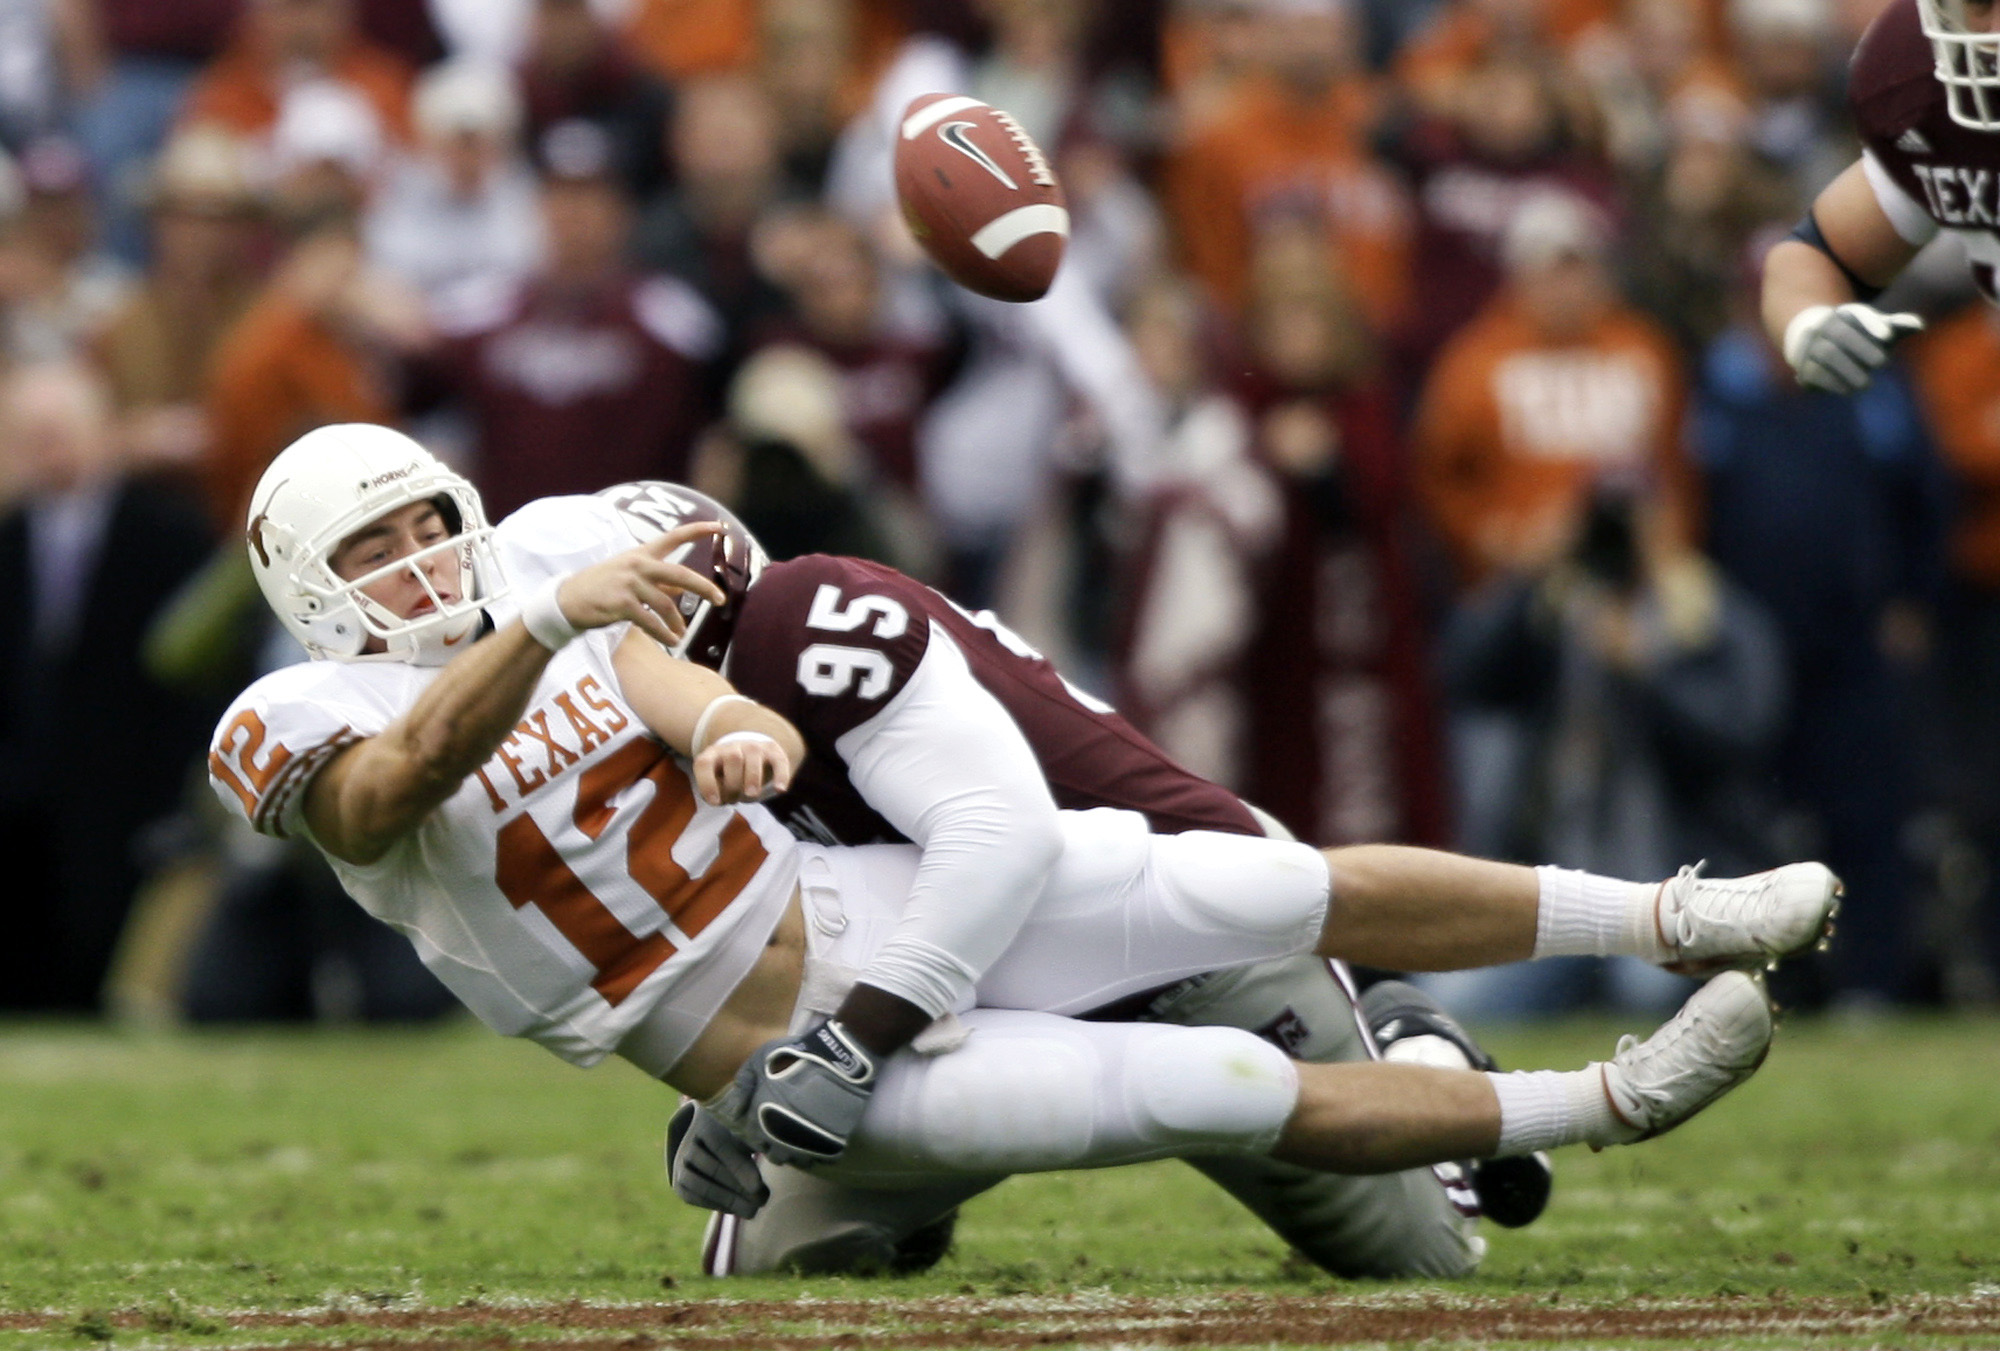 Texas quarterback Colt McCoy (12) throws an incomplete pass as he is hit by Texas A&M's Henry Smith (95) during the first quarter of a football game Friday, Nov. 23, 2007 in College Station, Texas.  (AP Photo/David J. Phillip)